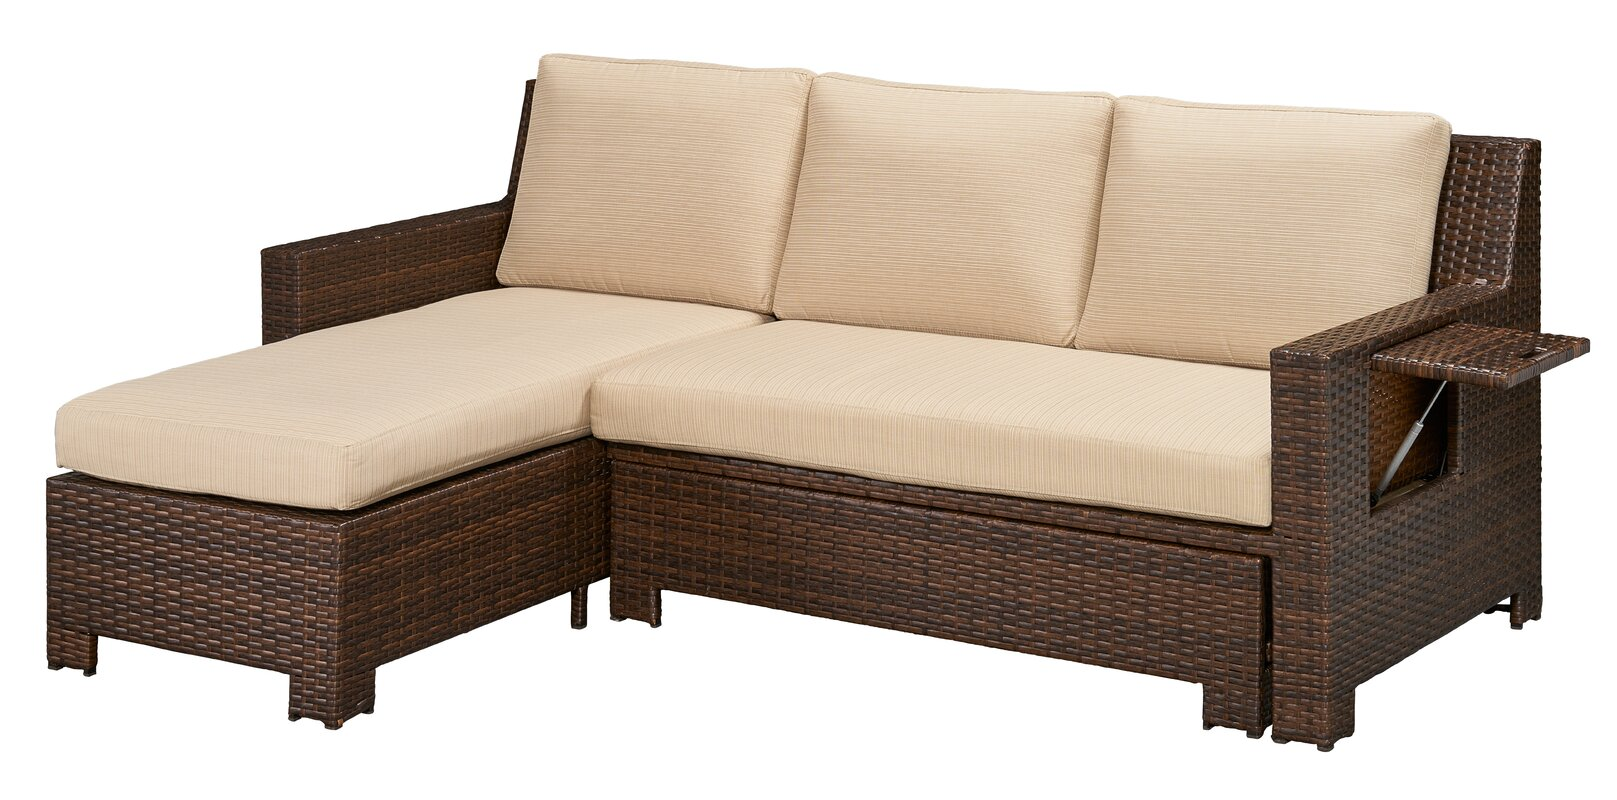 Convertible Sectional Sofa Darby Home Co Ferndale Deck